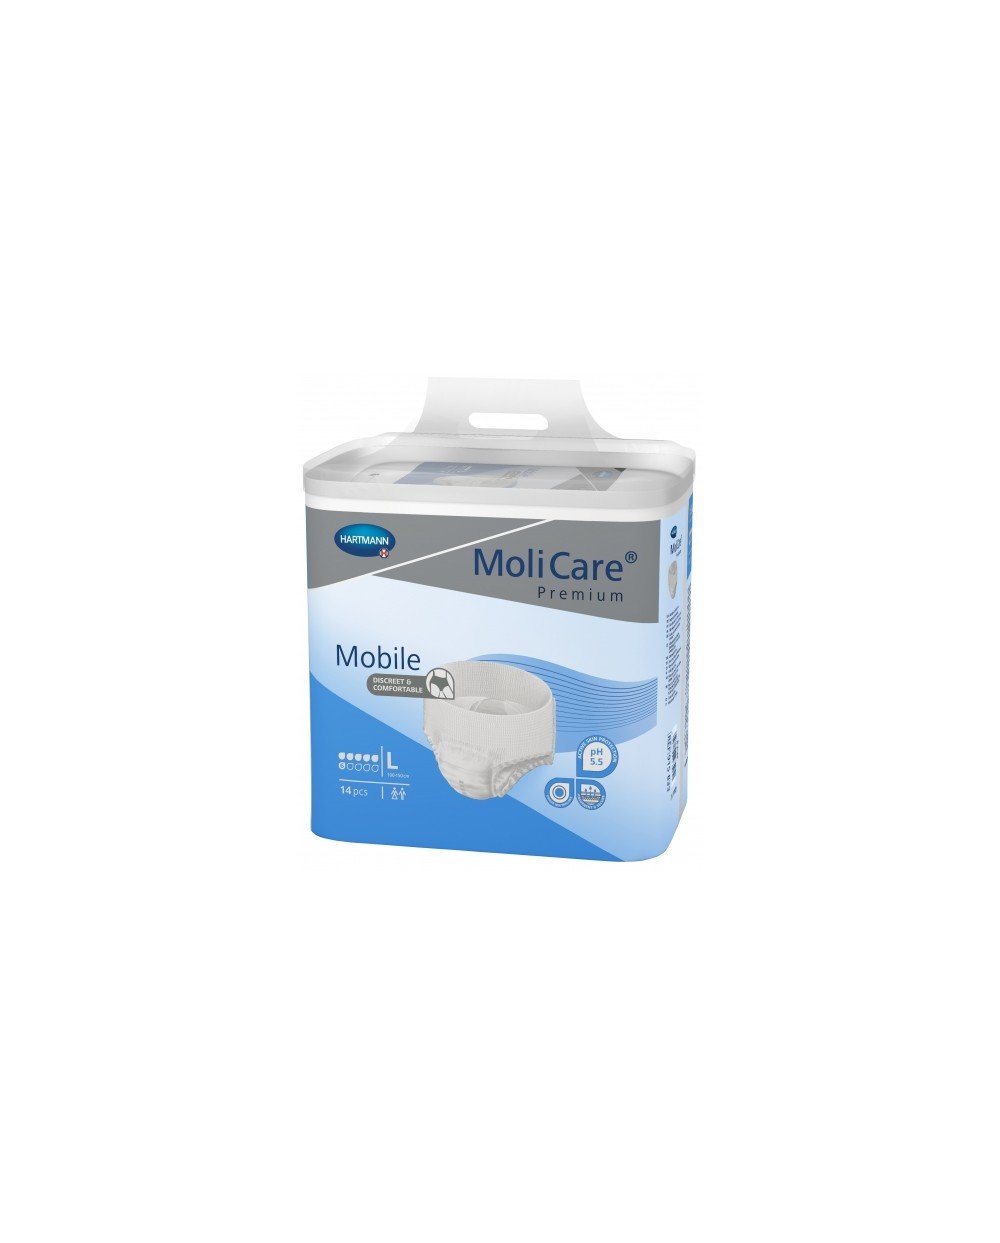 Hartmann MoliCare Mobile 6 gouttes Large - 14 protections